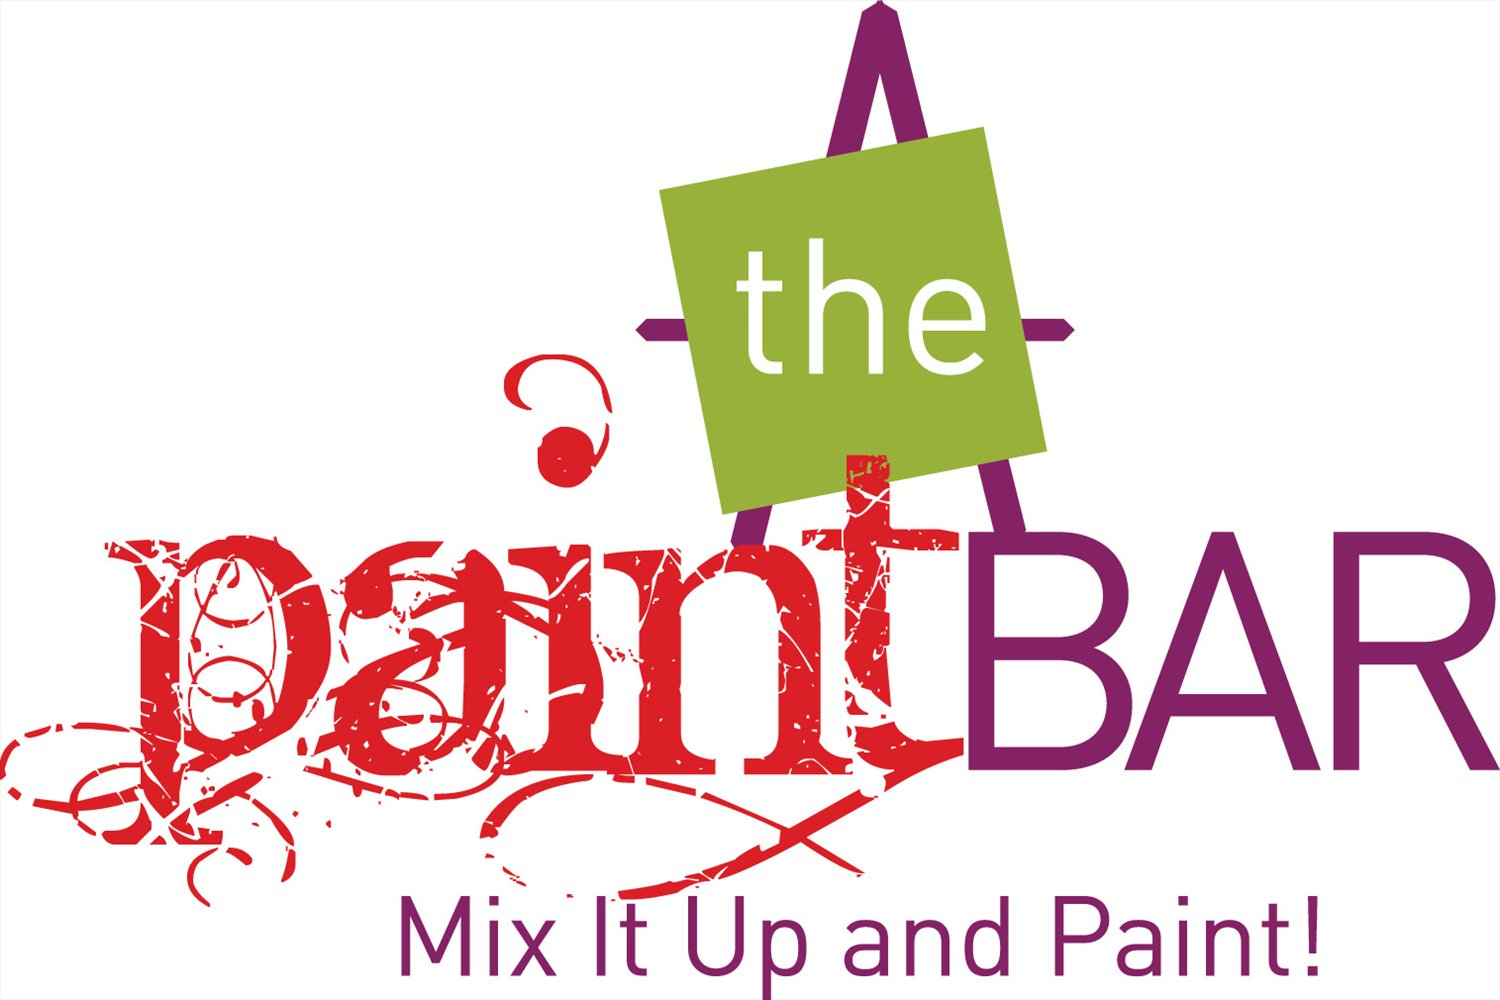 Top 5 things to do in newton for Paint bar newton